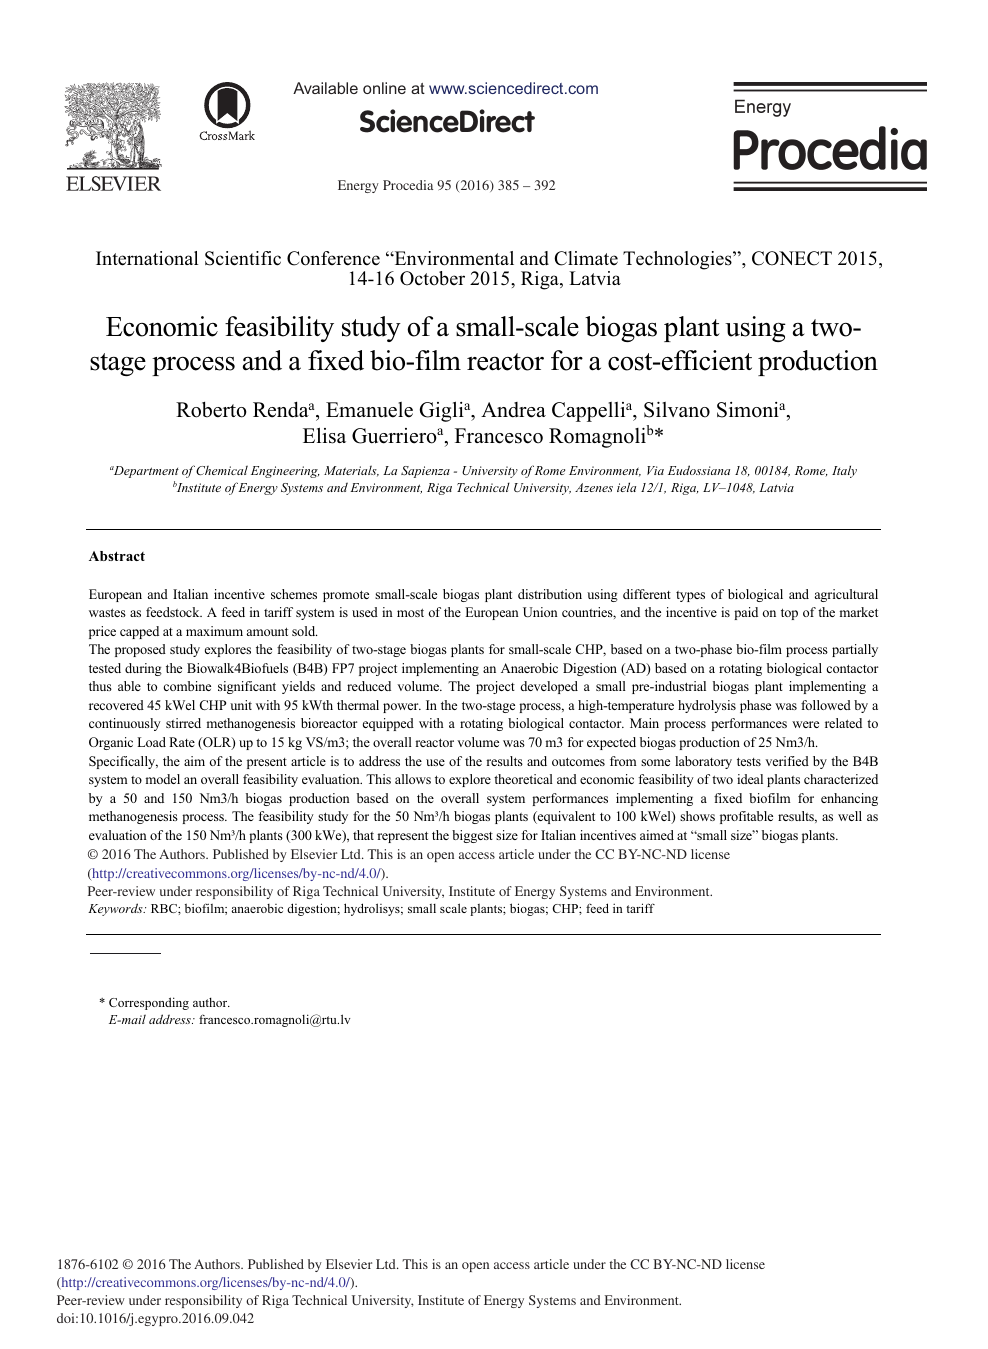 Economic Feasibility Study of a Small-scale Biogas Plant